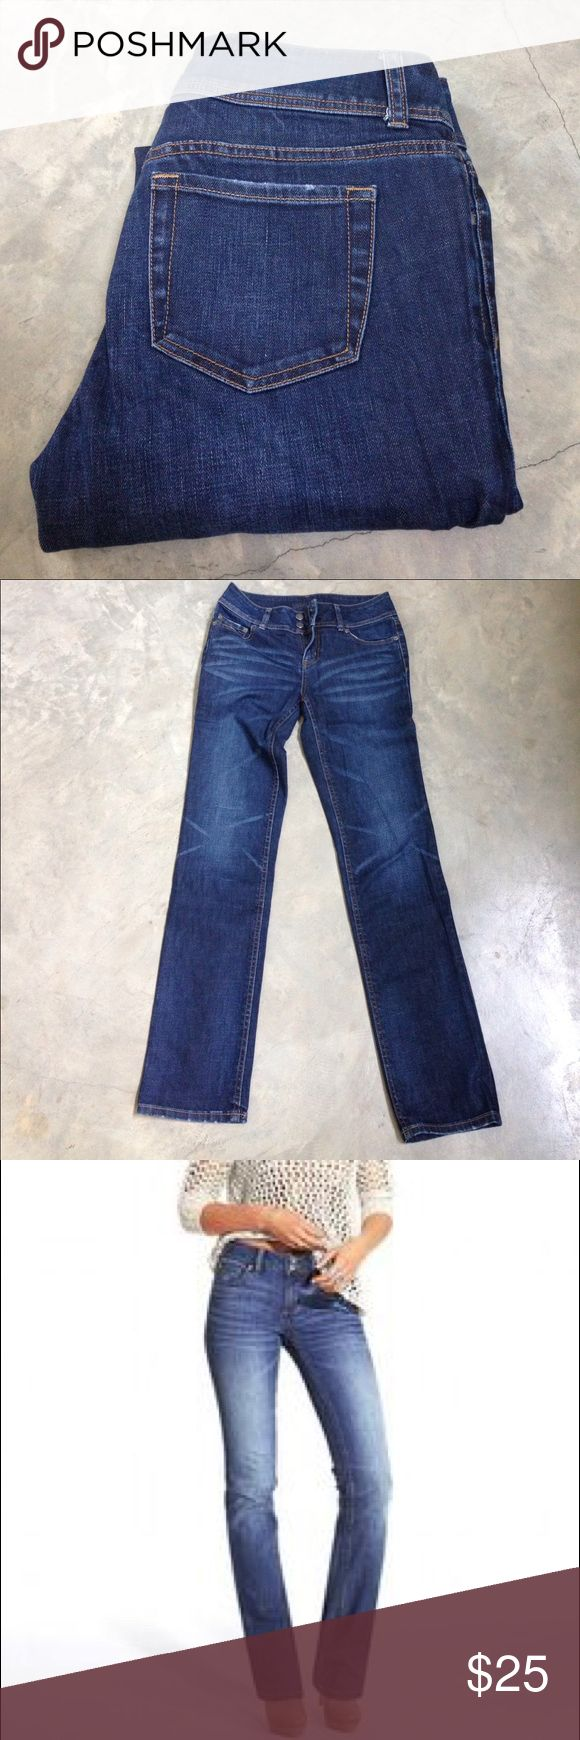 """London Jean Hipster Straight-Leg Jeans The flawless fit you love, now available in straight leg. Wide-contoured waistband prevents back gapping. Size 6L with 33"""" inseam. Straight leg with 14'' leg opening. Mid rise, straight slim fit; cotton 98%, spandex 2%. London Jean Jeans Straight Leg"""